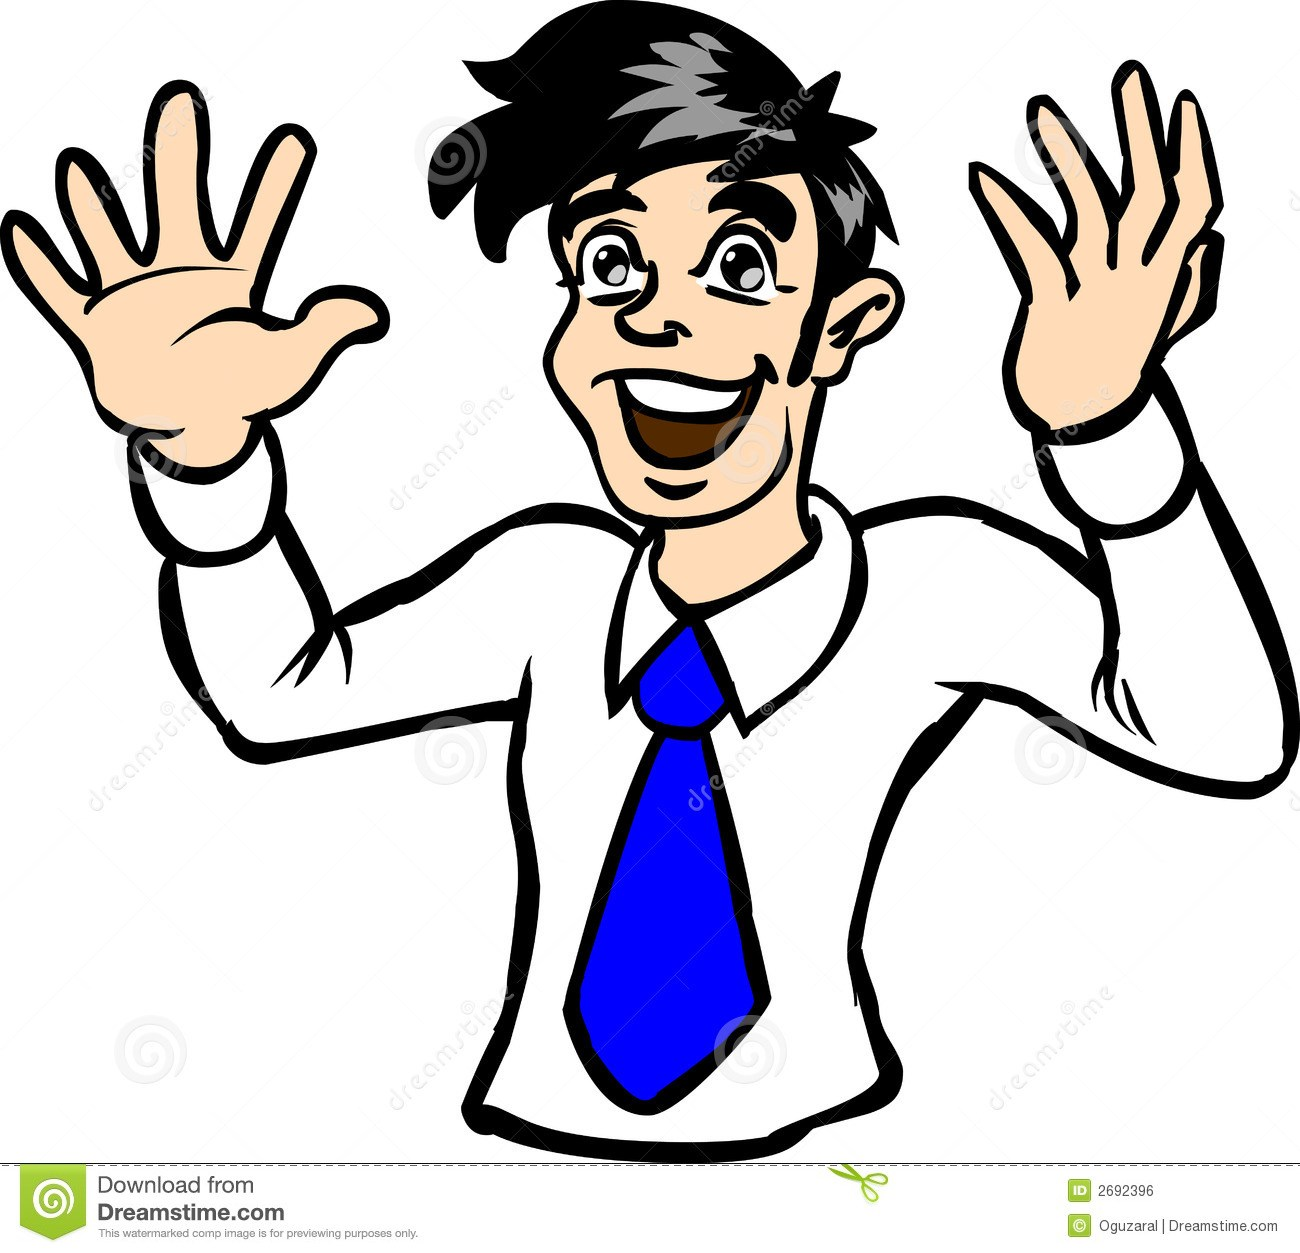 Clipart excited person 4 » Clipart Portal.